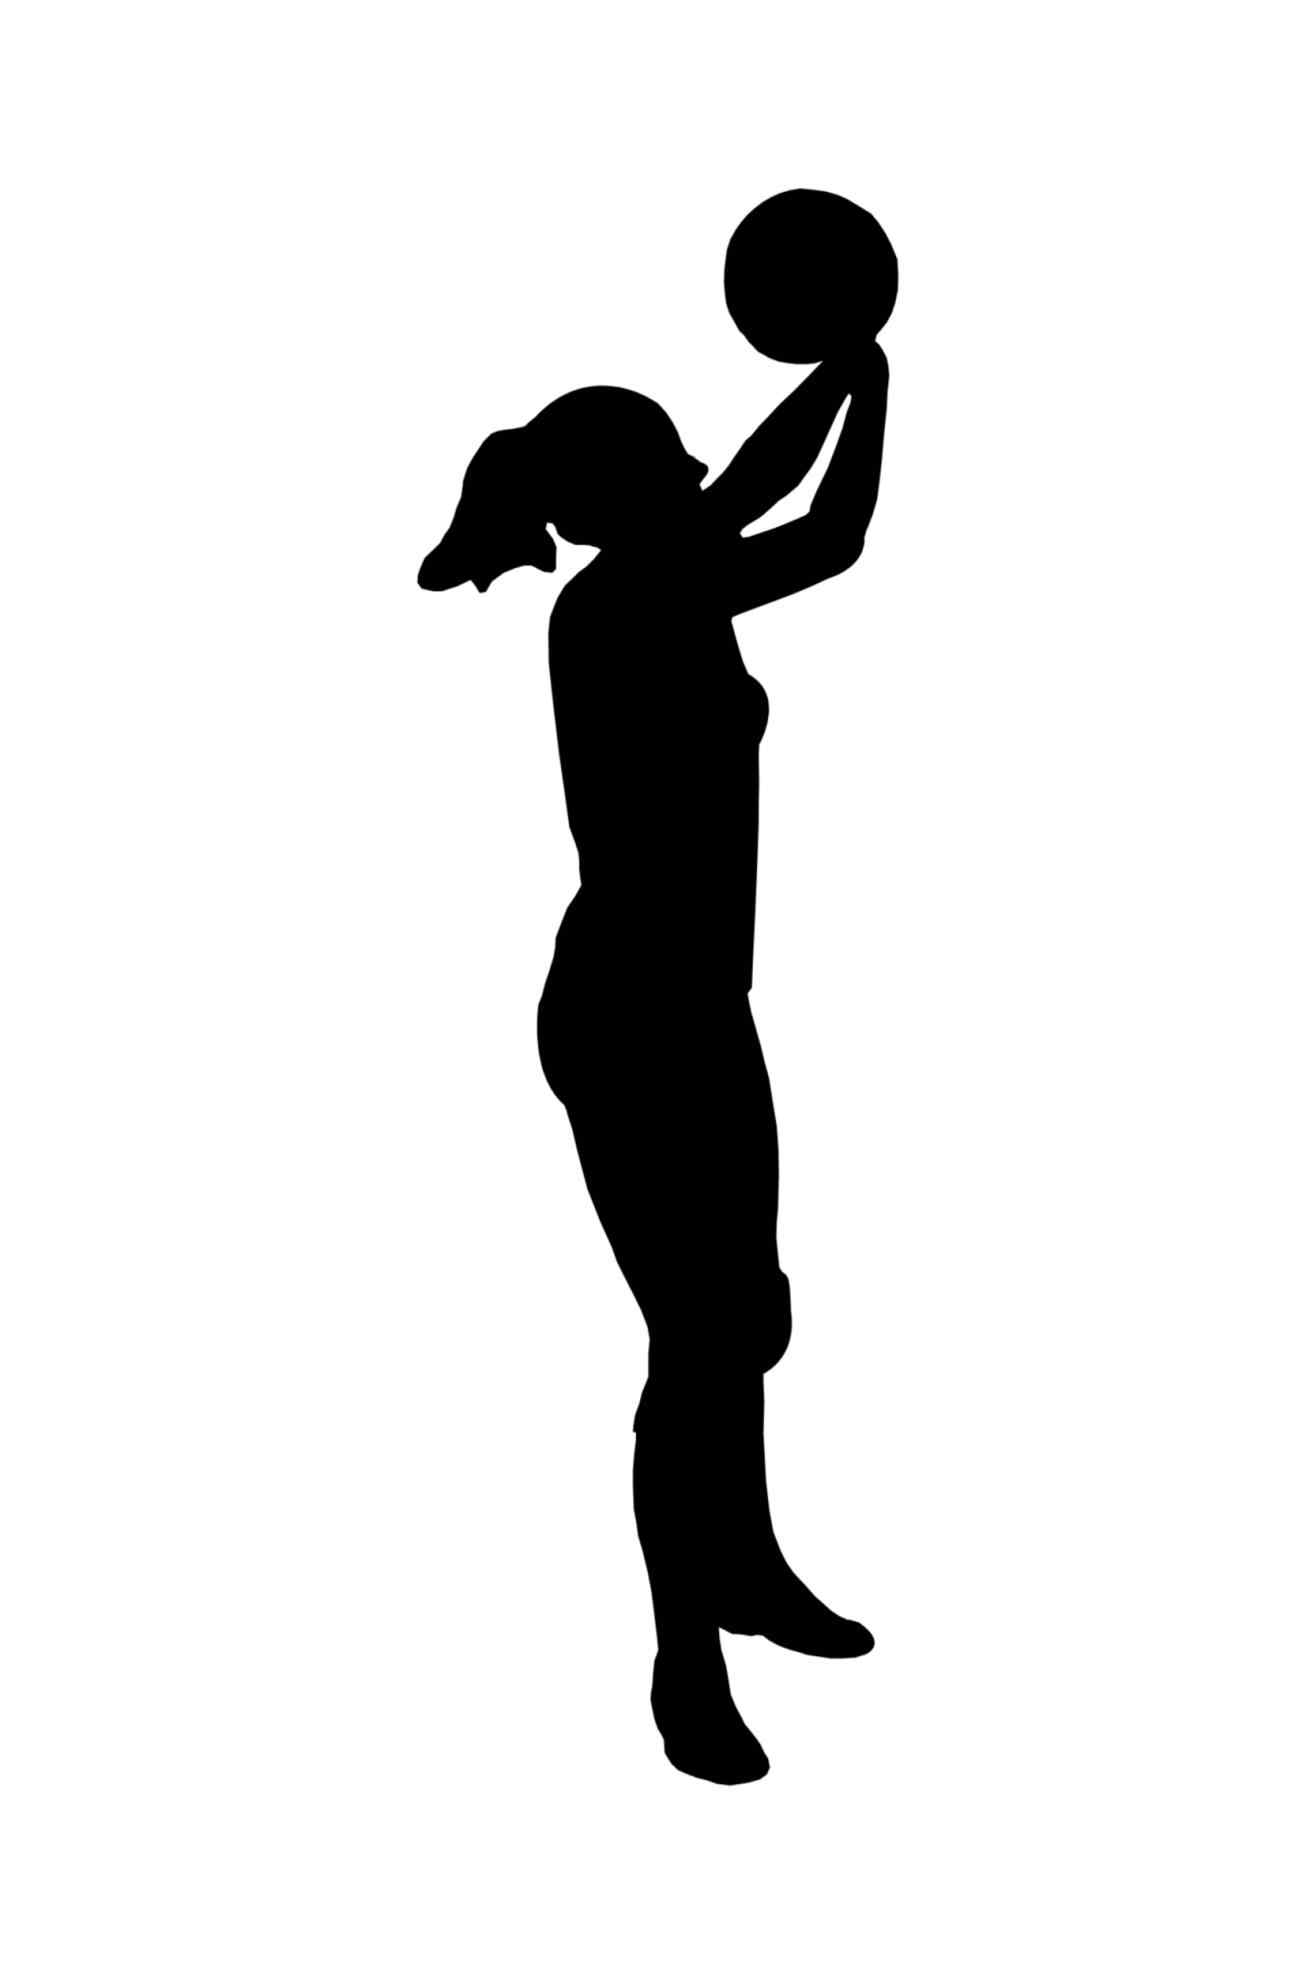 Crossover clipart vector black and white stock Crossover Clipart Clipart Basketball Collection Clip Art Girl - 1972 ... vector black and white stock